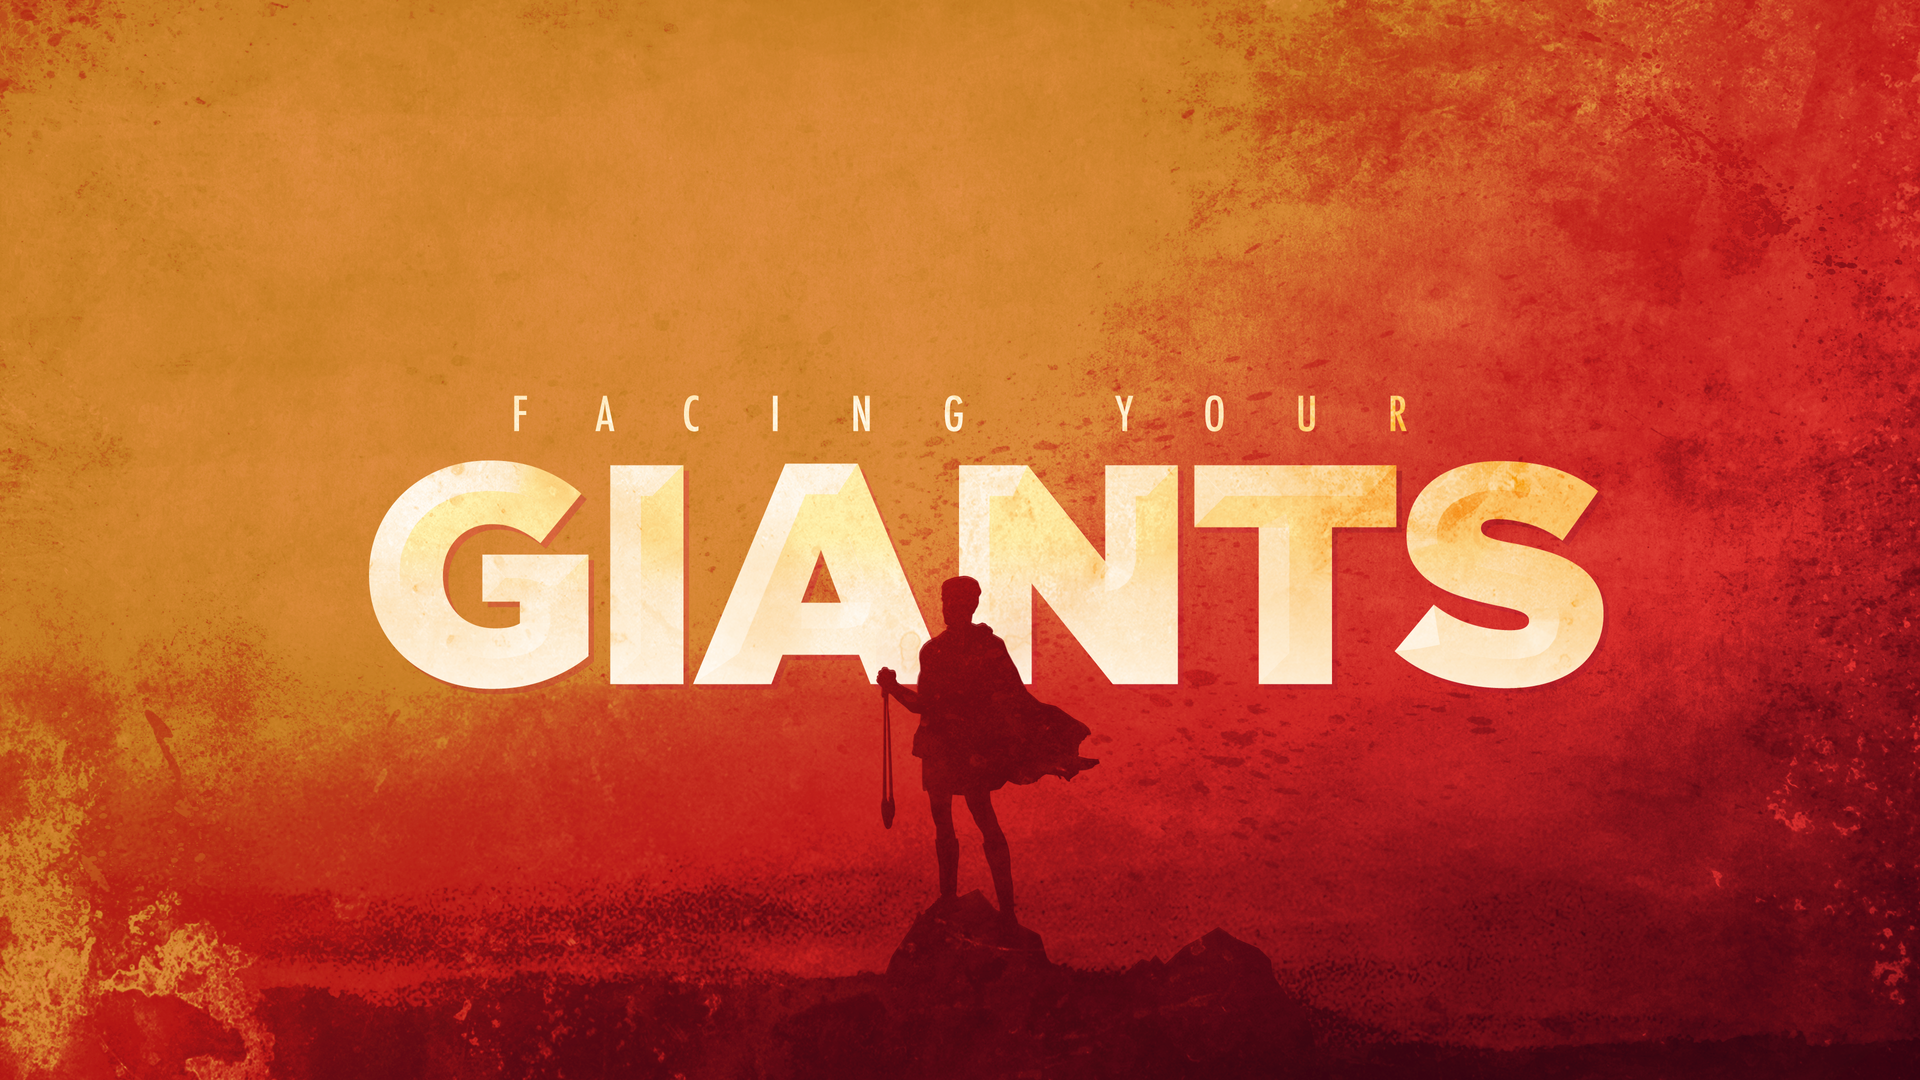 Series: Facing Your Giants